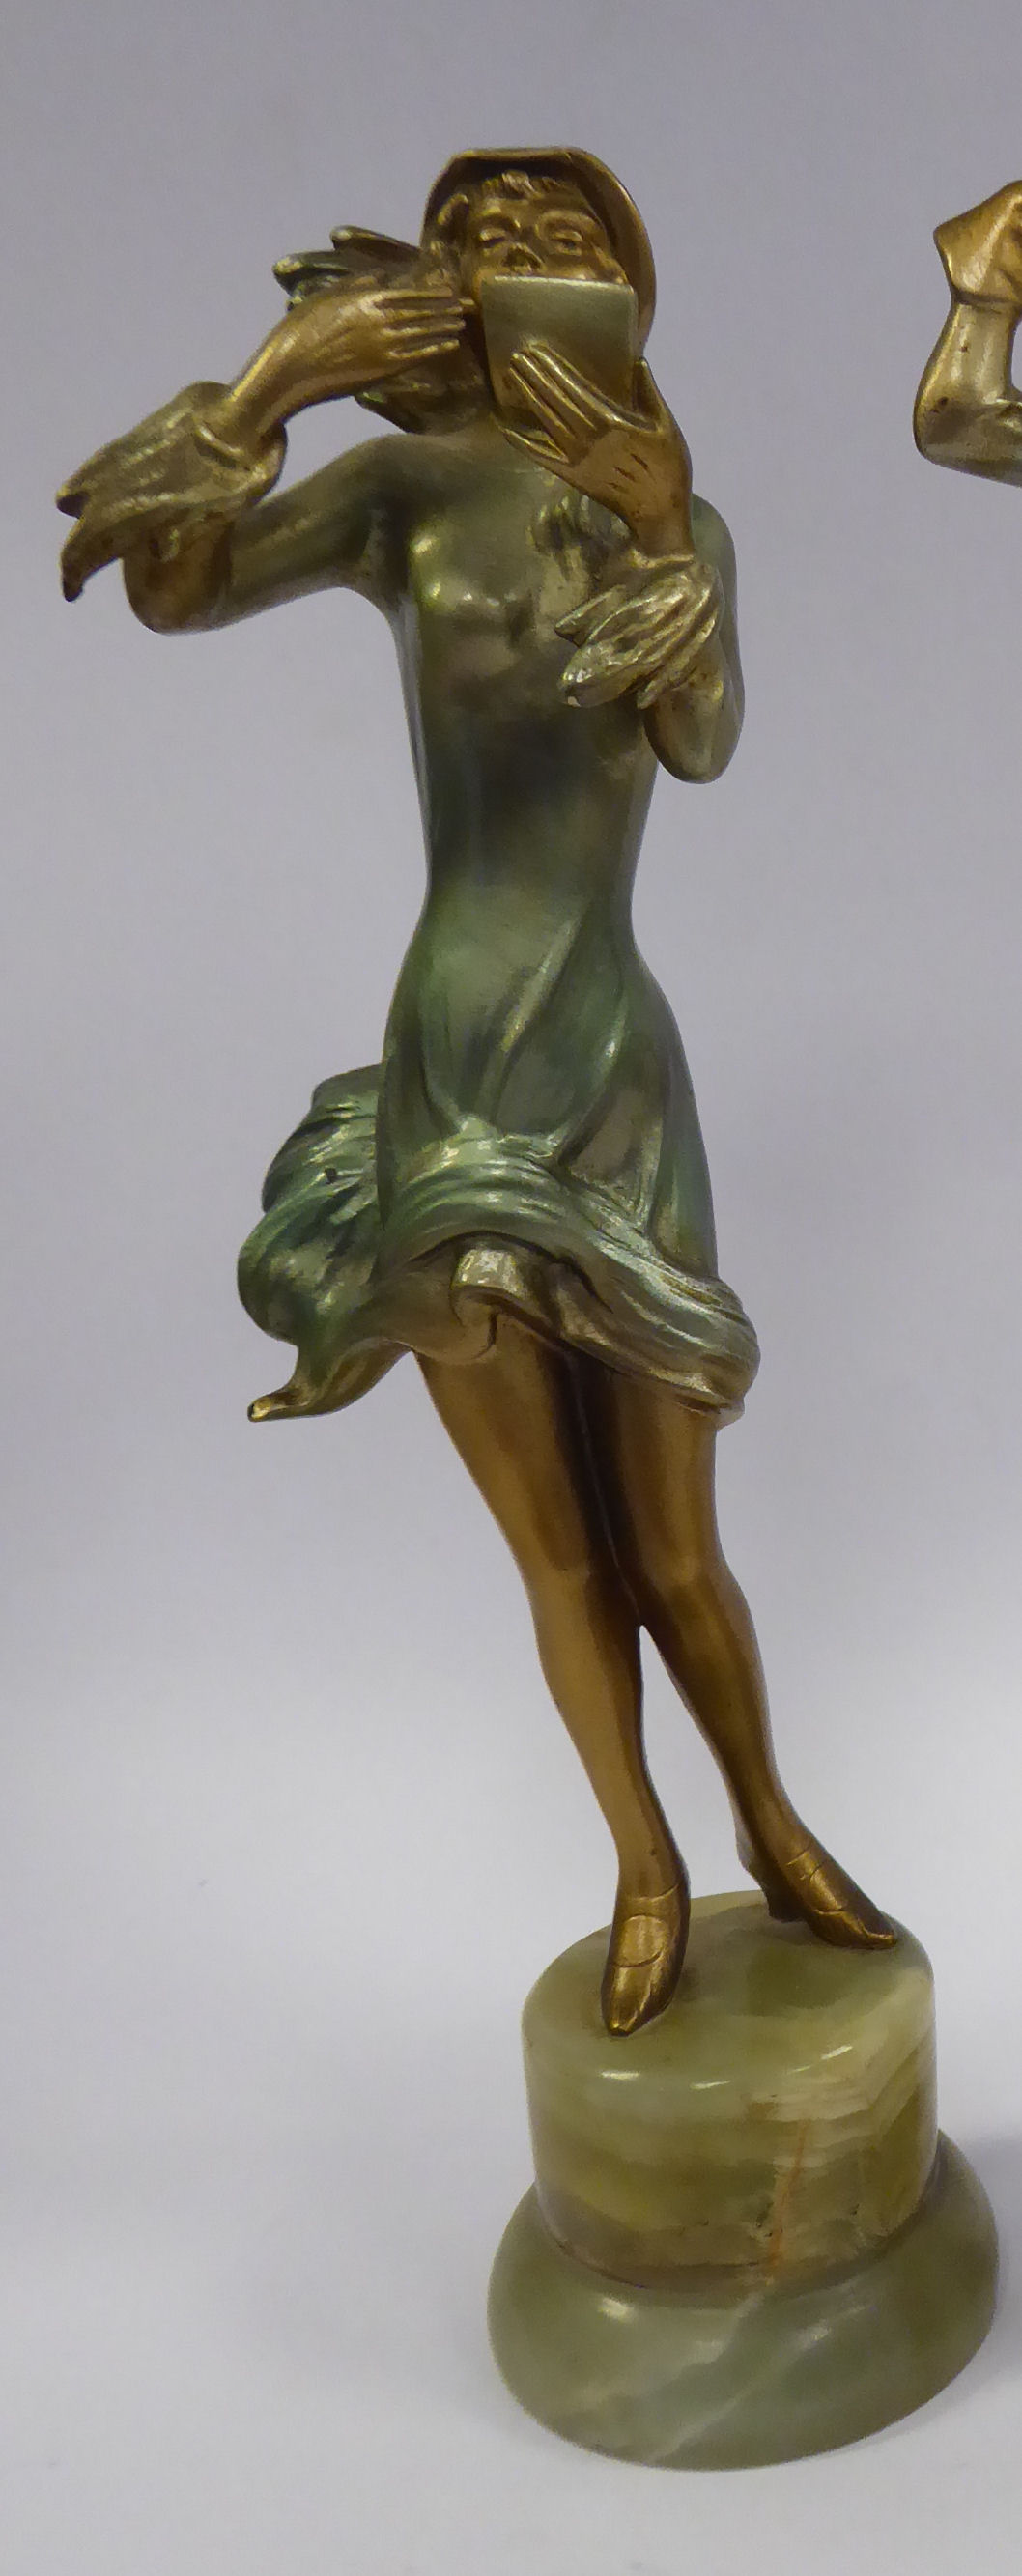 Lot 56 - A late 1920s/early 1930s painted cold cast figure, a fashionable young woman, wearing a bonnet,